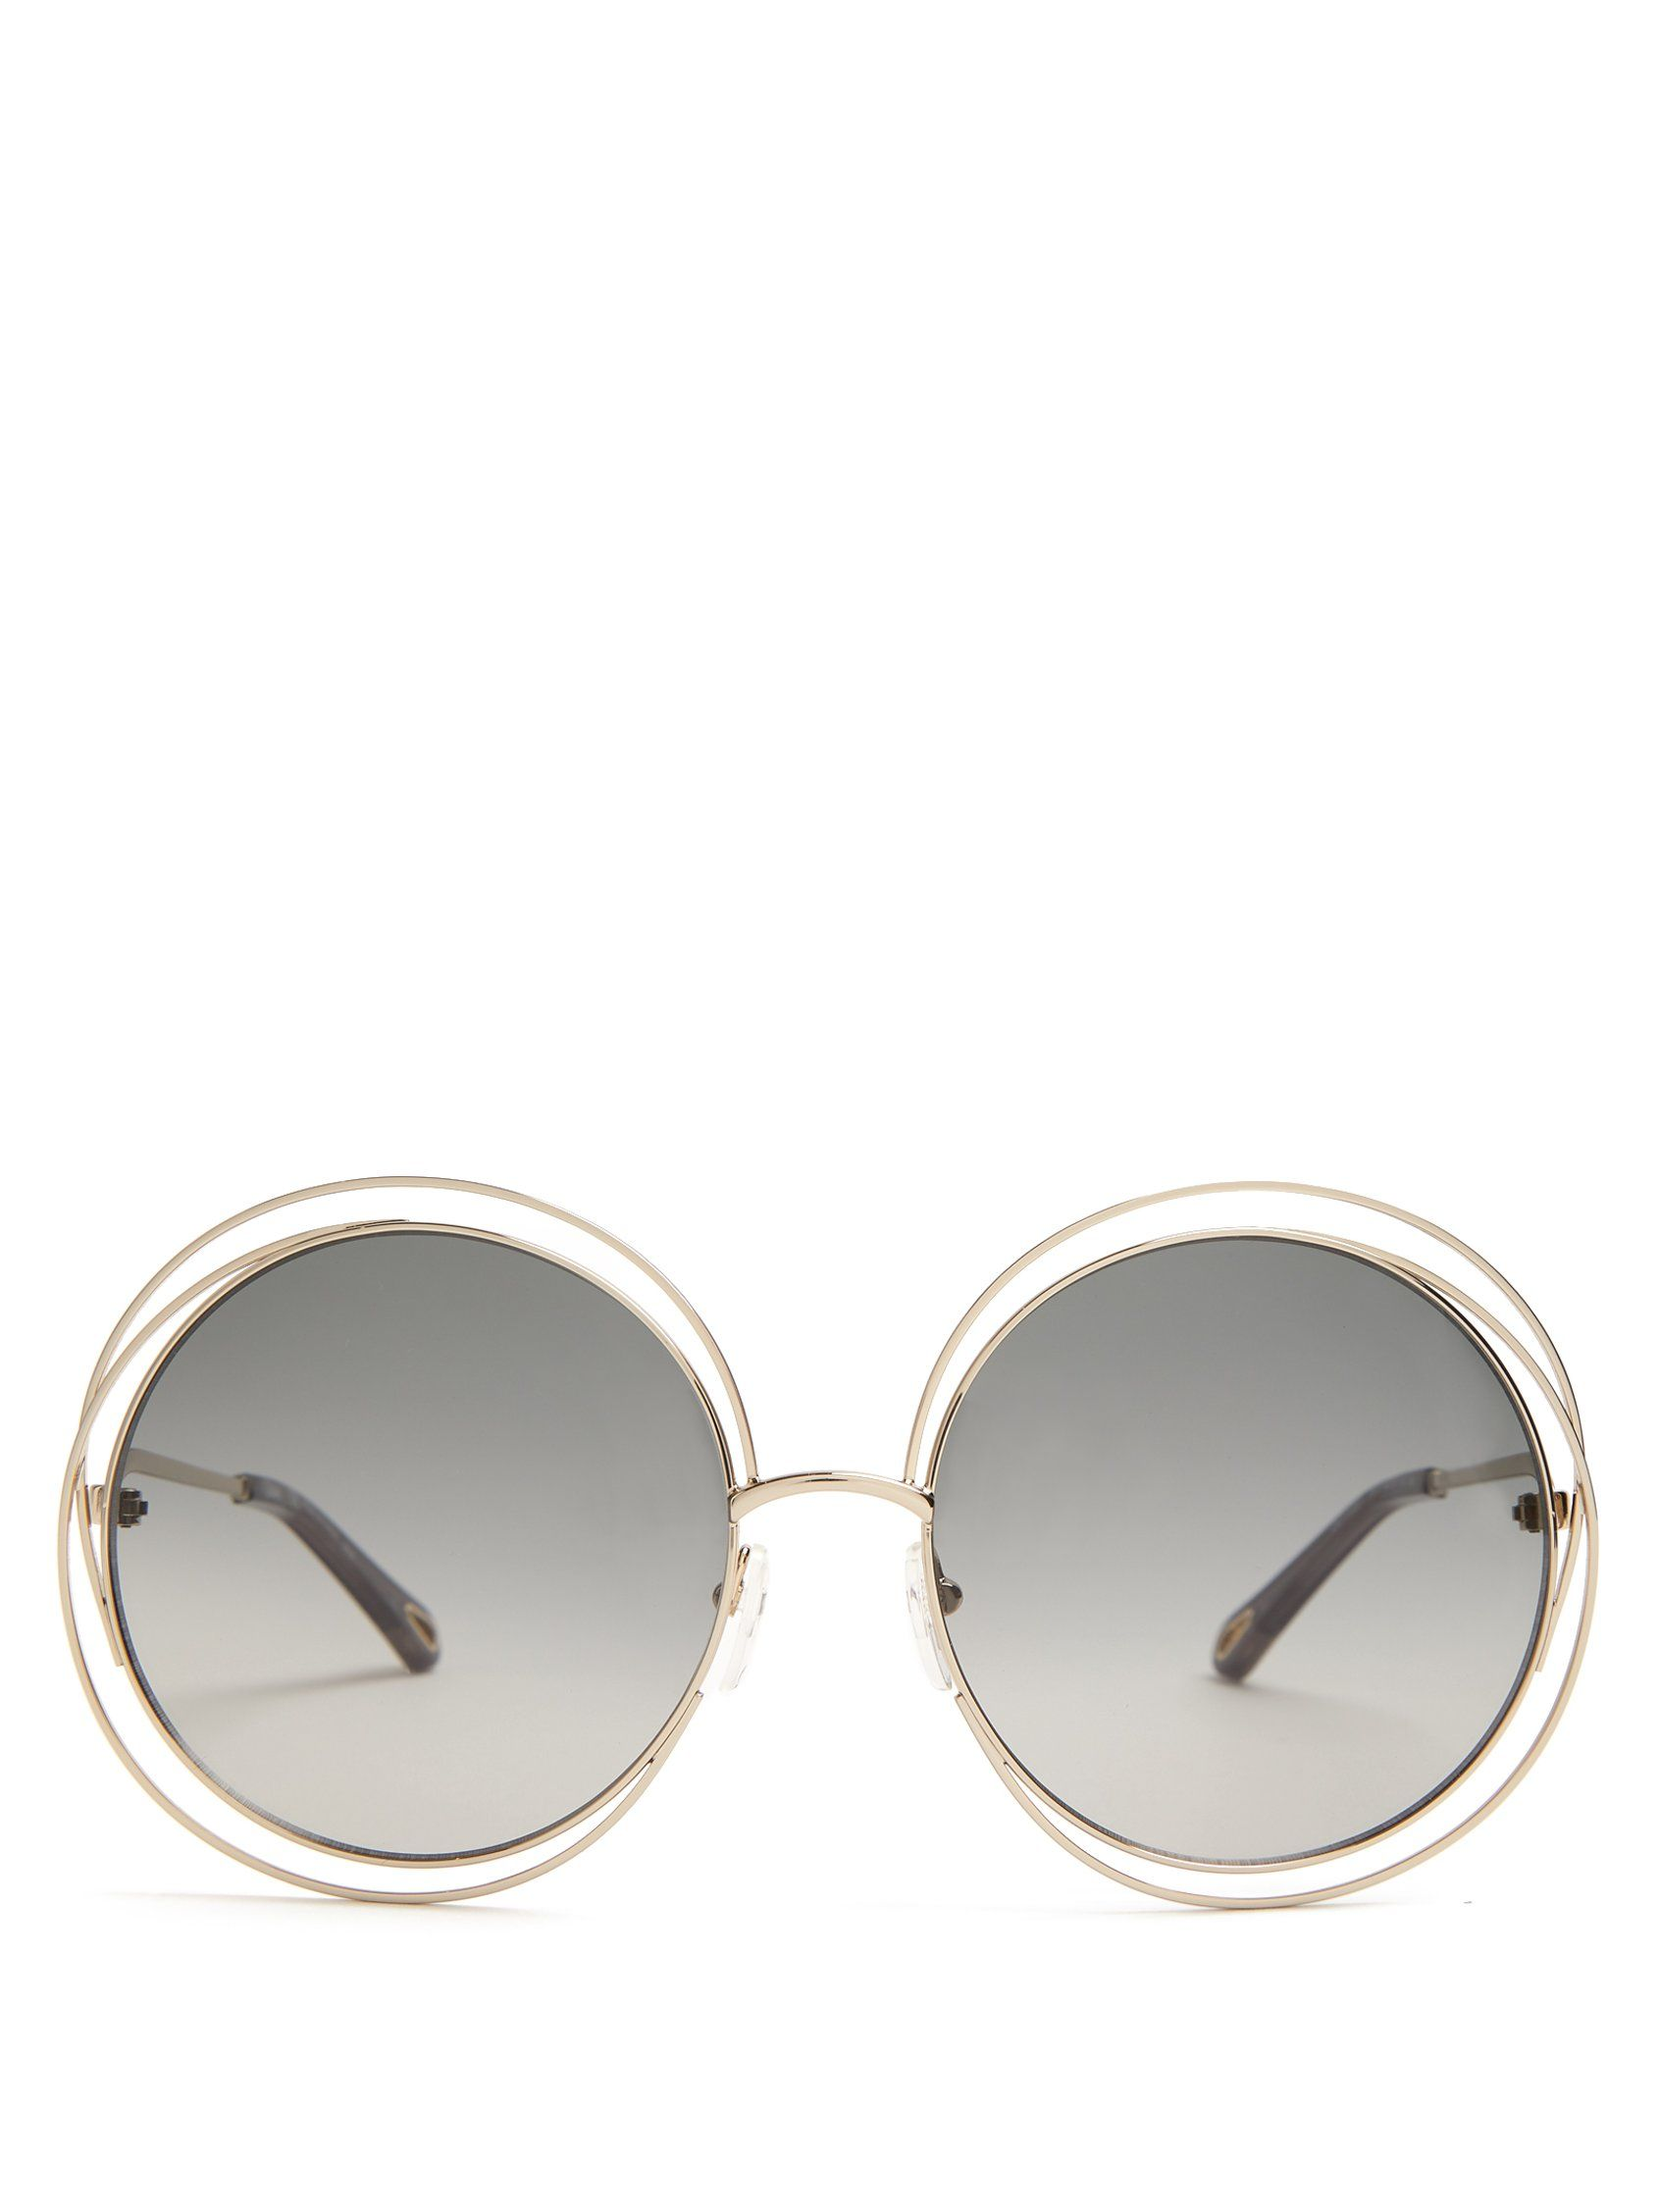 2271cebf05 Click here to buy Chloé Carlina round-frame sunglasses at MATCHESFASHION.COM